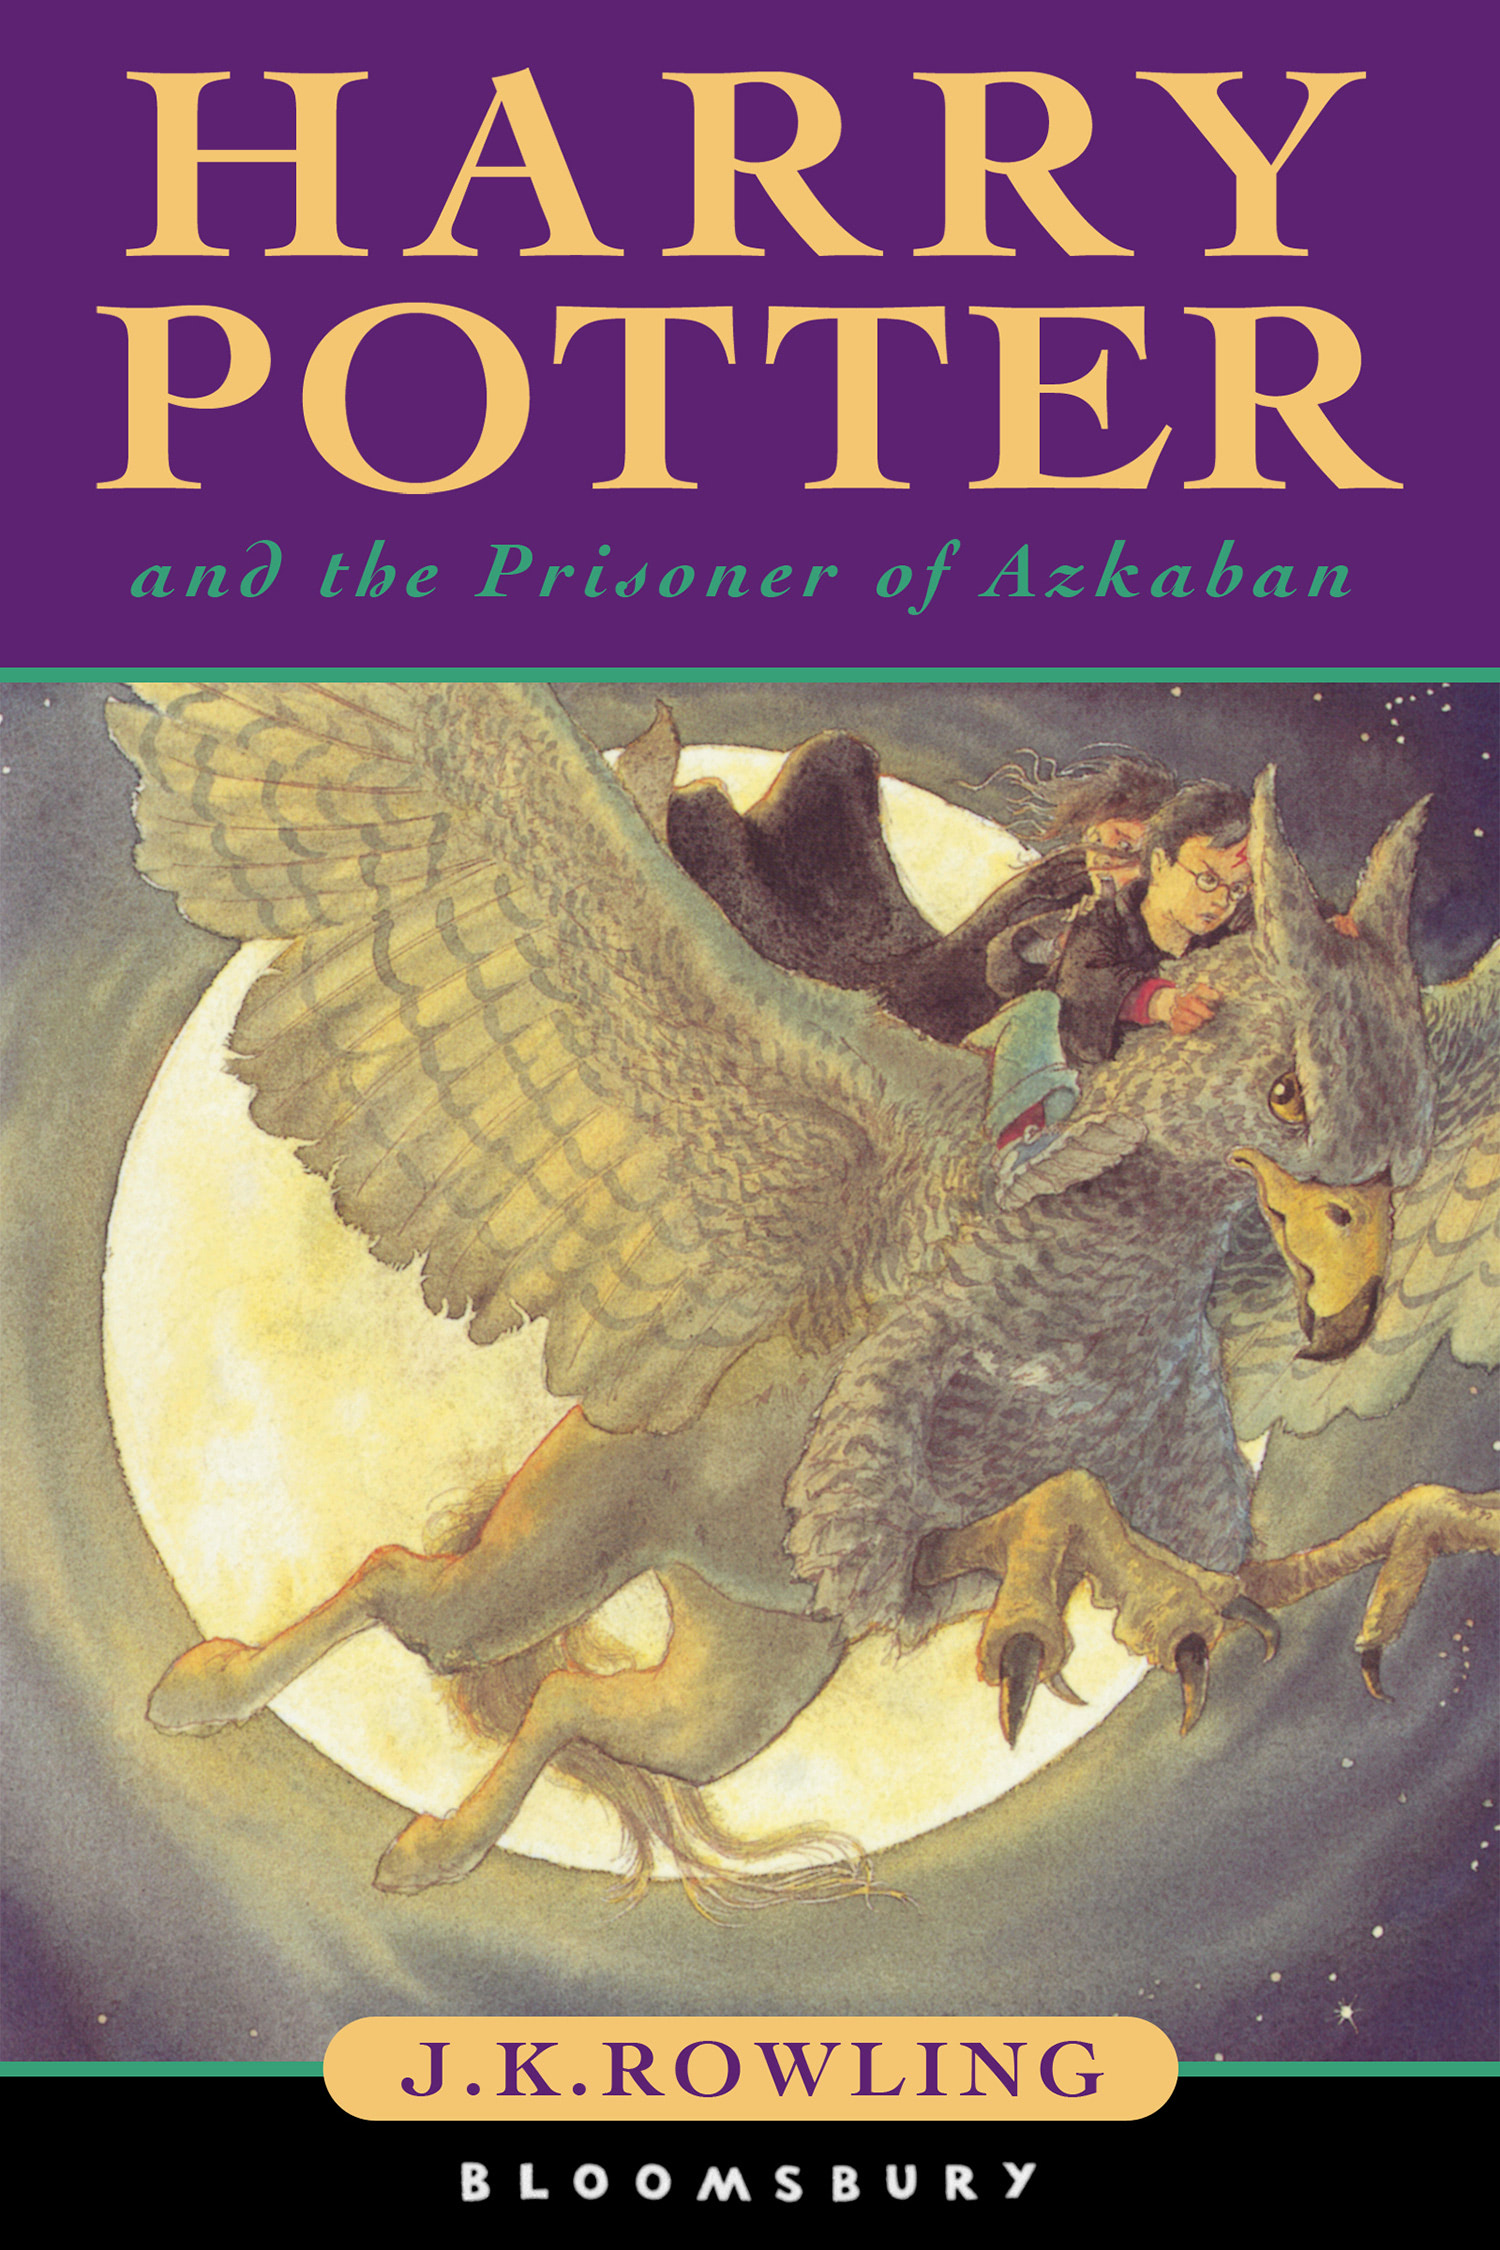 'Prisoner of Azkaban' UK children's edition